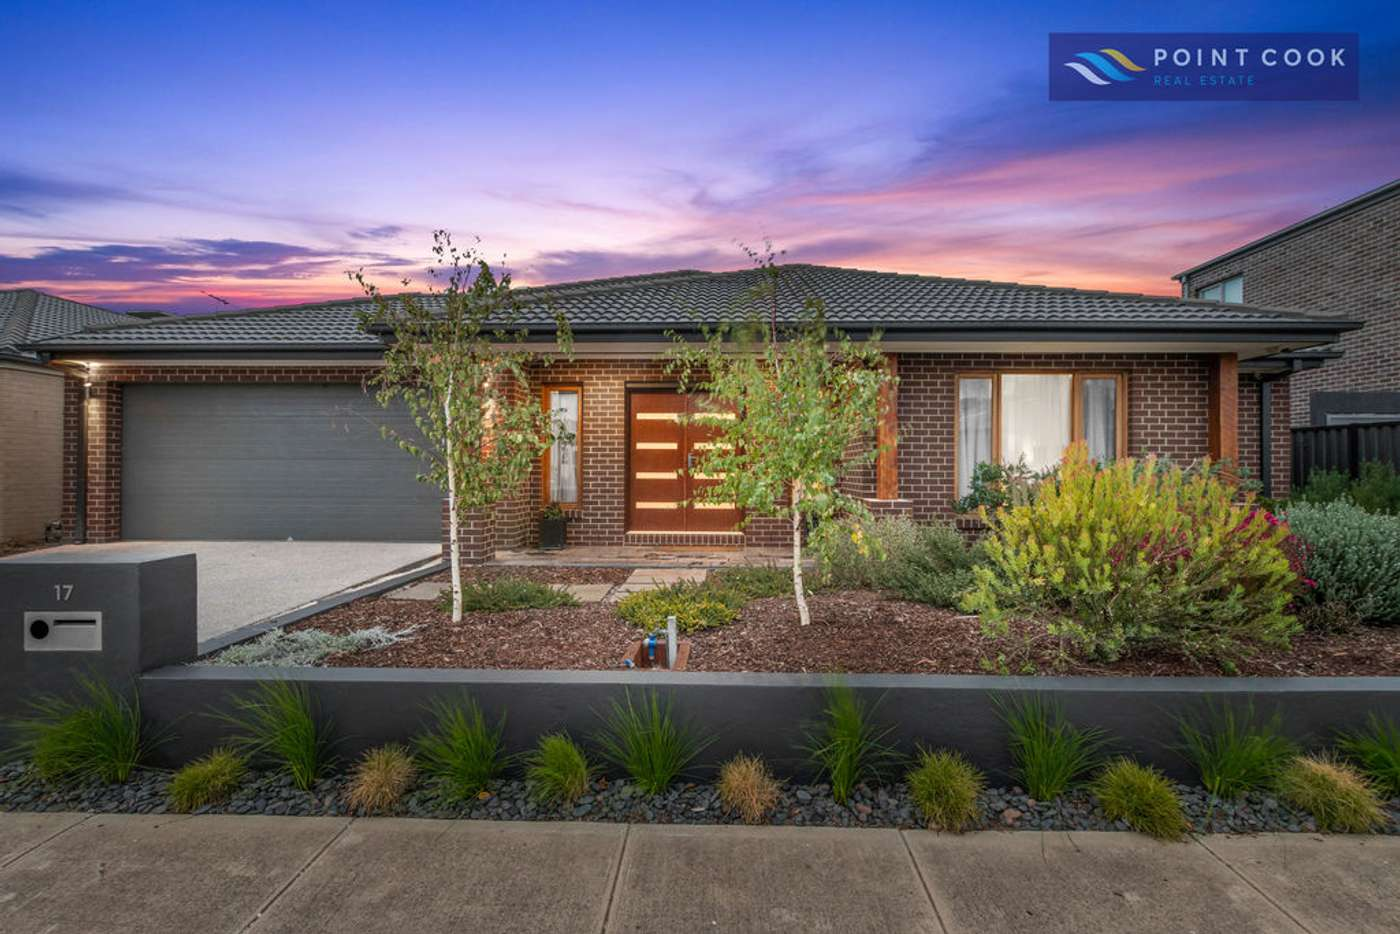 Main view of Homely house listing, 17 Japonica Way, Point Cook VIC 3030